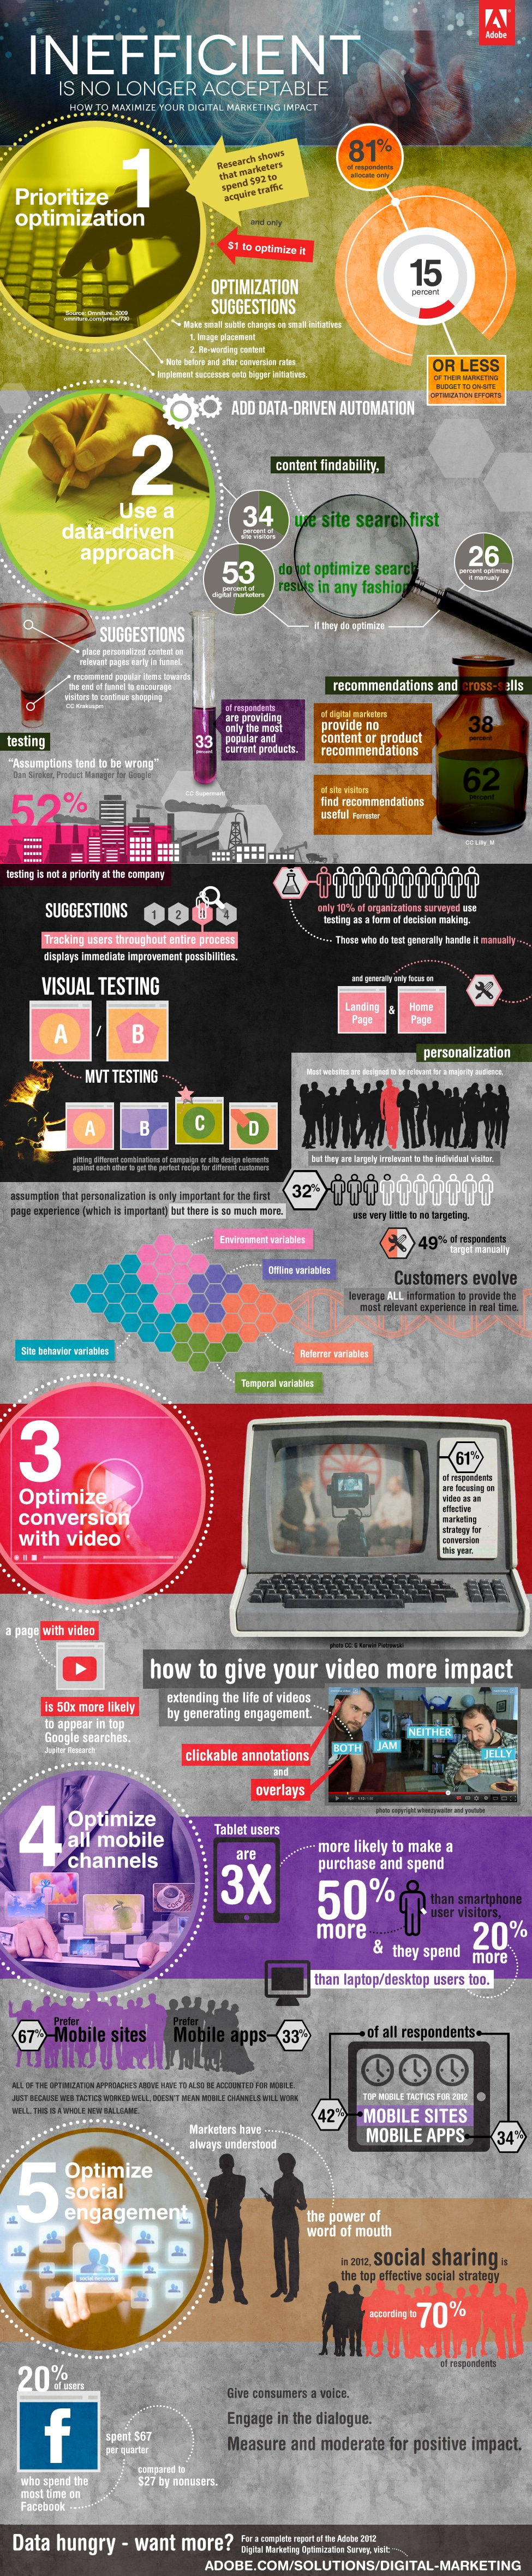 Top 5 Conversion Opportunities For Digital Marketers [Infographic]